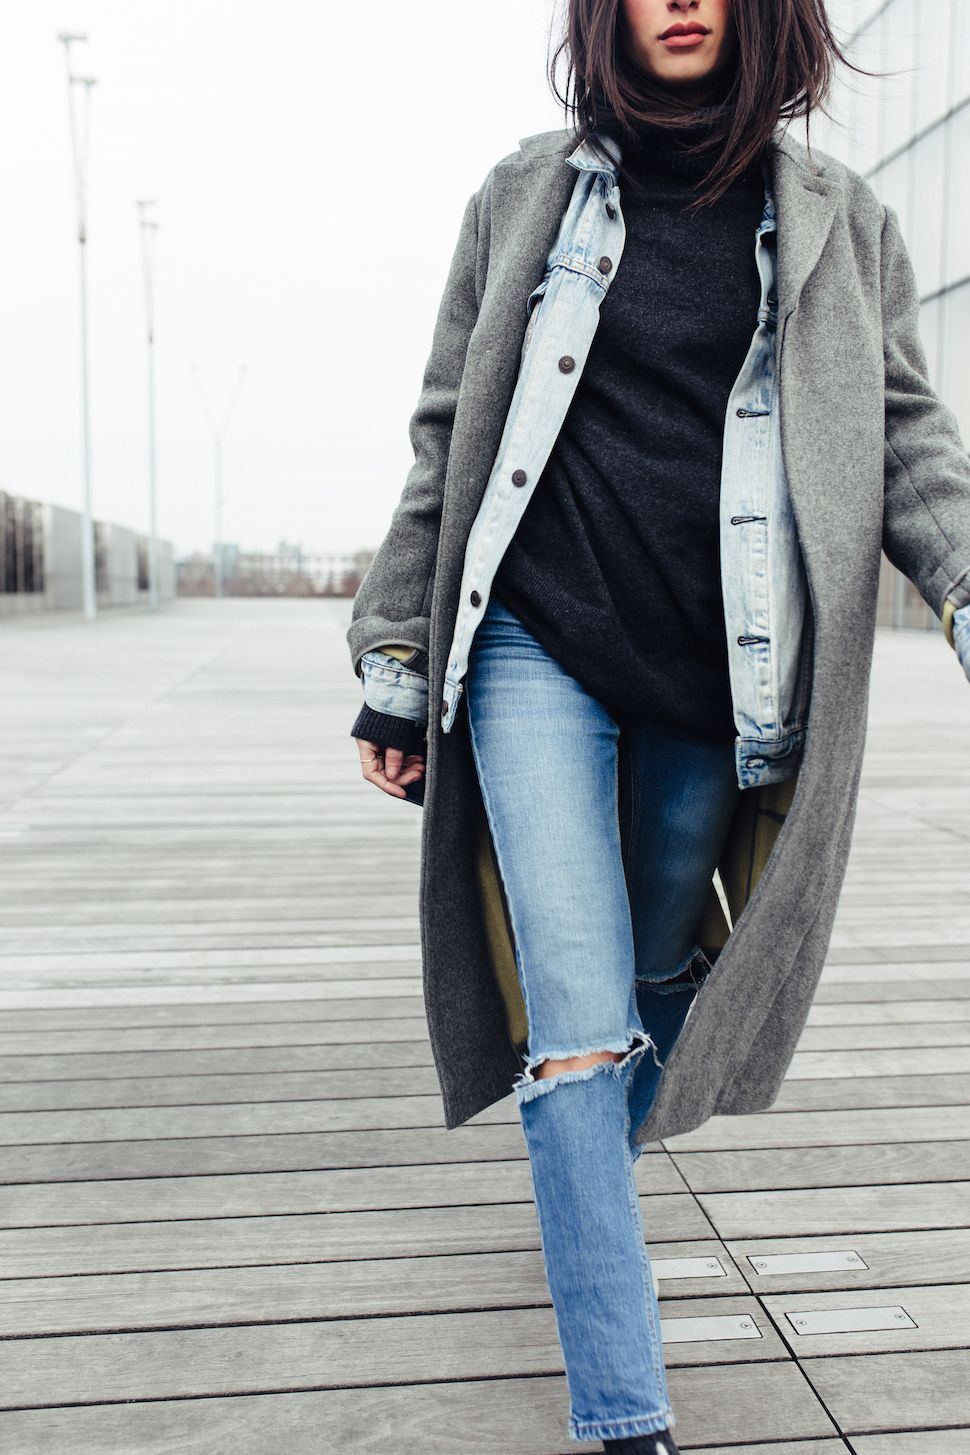 Buy Fashion Inspirationcollege street style roundup october picture trends